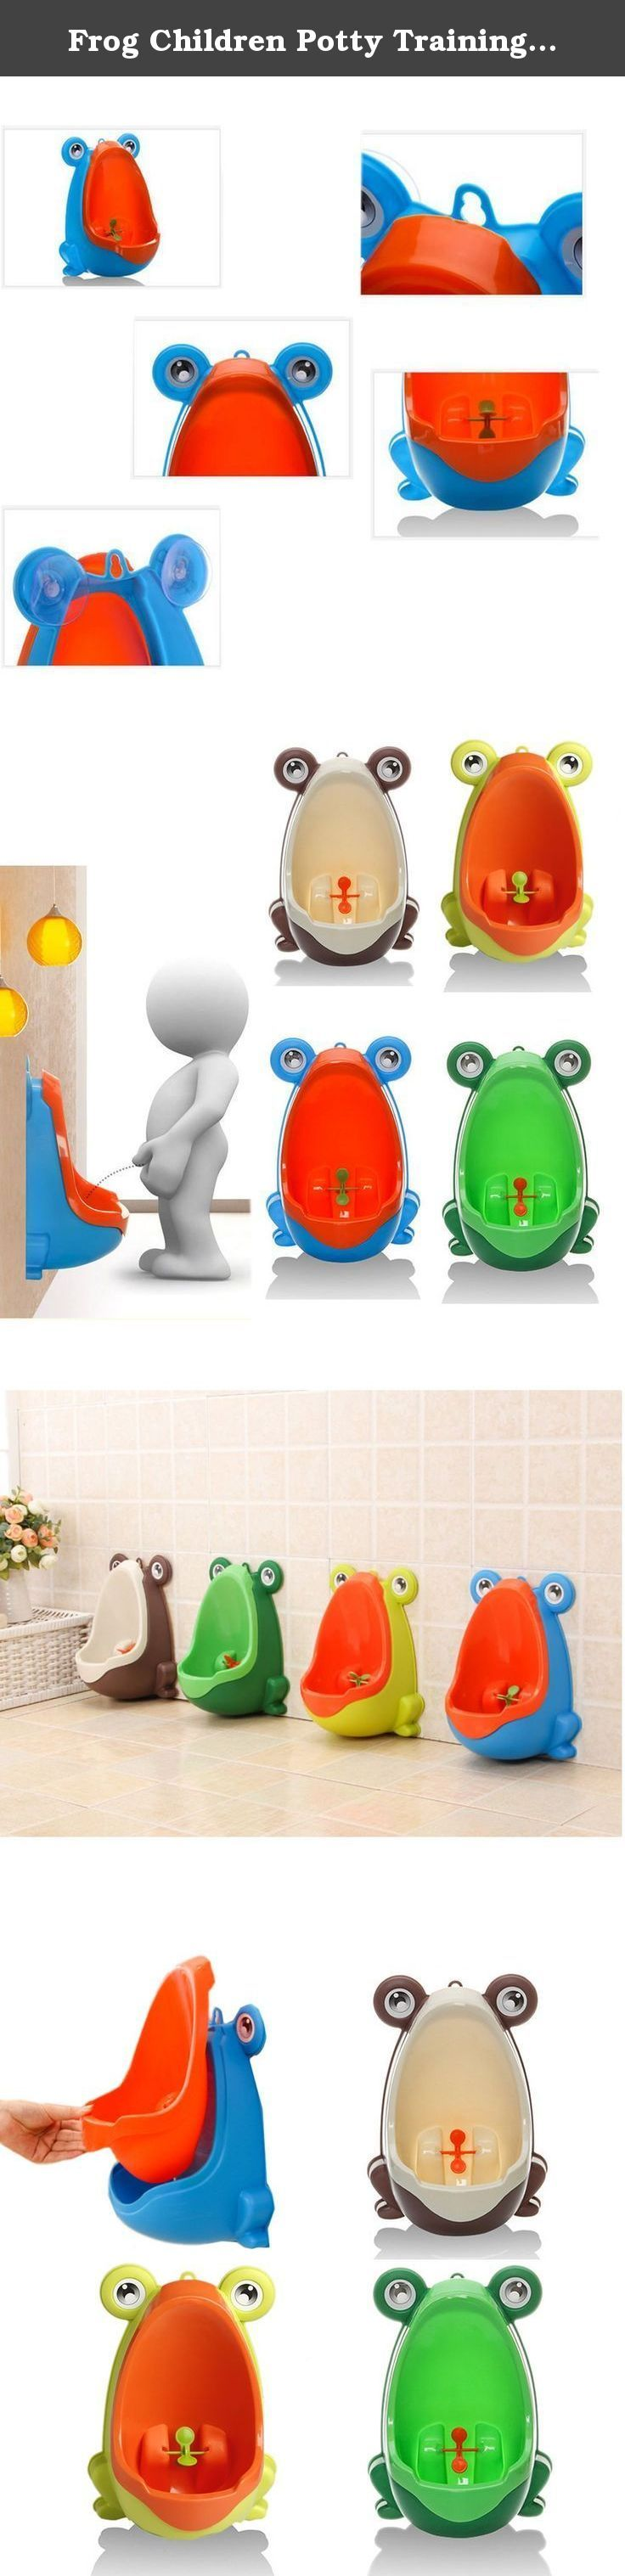 Frog Children Potty Training Toilet Kids Urinal For Boys Pee Trainer Bathroom-BLUE. Shipment : Shipping to: Americas, Europe, Asia Excludes: APO/FPO, Austria, Switzerland, Spain, Hong Kong, Kuwait, Cameroon, Japan, China, Taiwan, Jordan, Macau, Germany, Argentina, Italy, Palau, French Polynesia, Jersey, Bolivia Descriptions: 100% brand new and high quality Environmentally friendly material, nontoxic and no peculiar smell . Frog shape and rotating windmill improves your babies' interest....